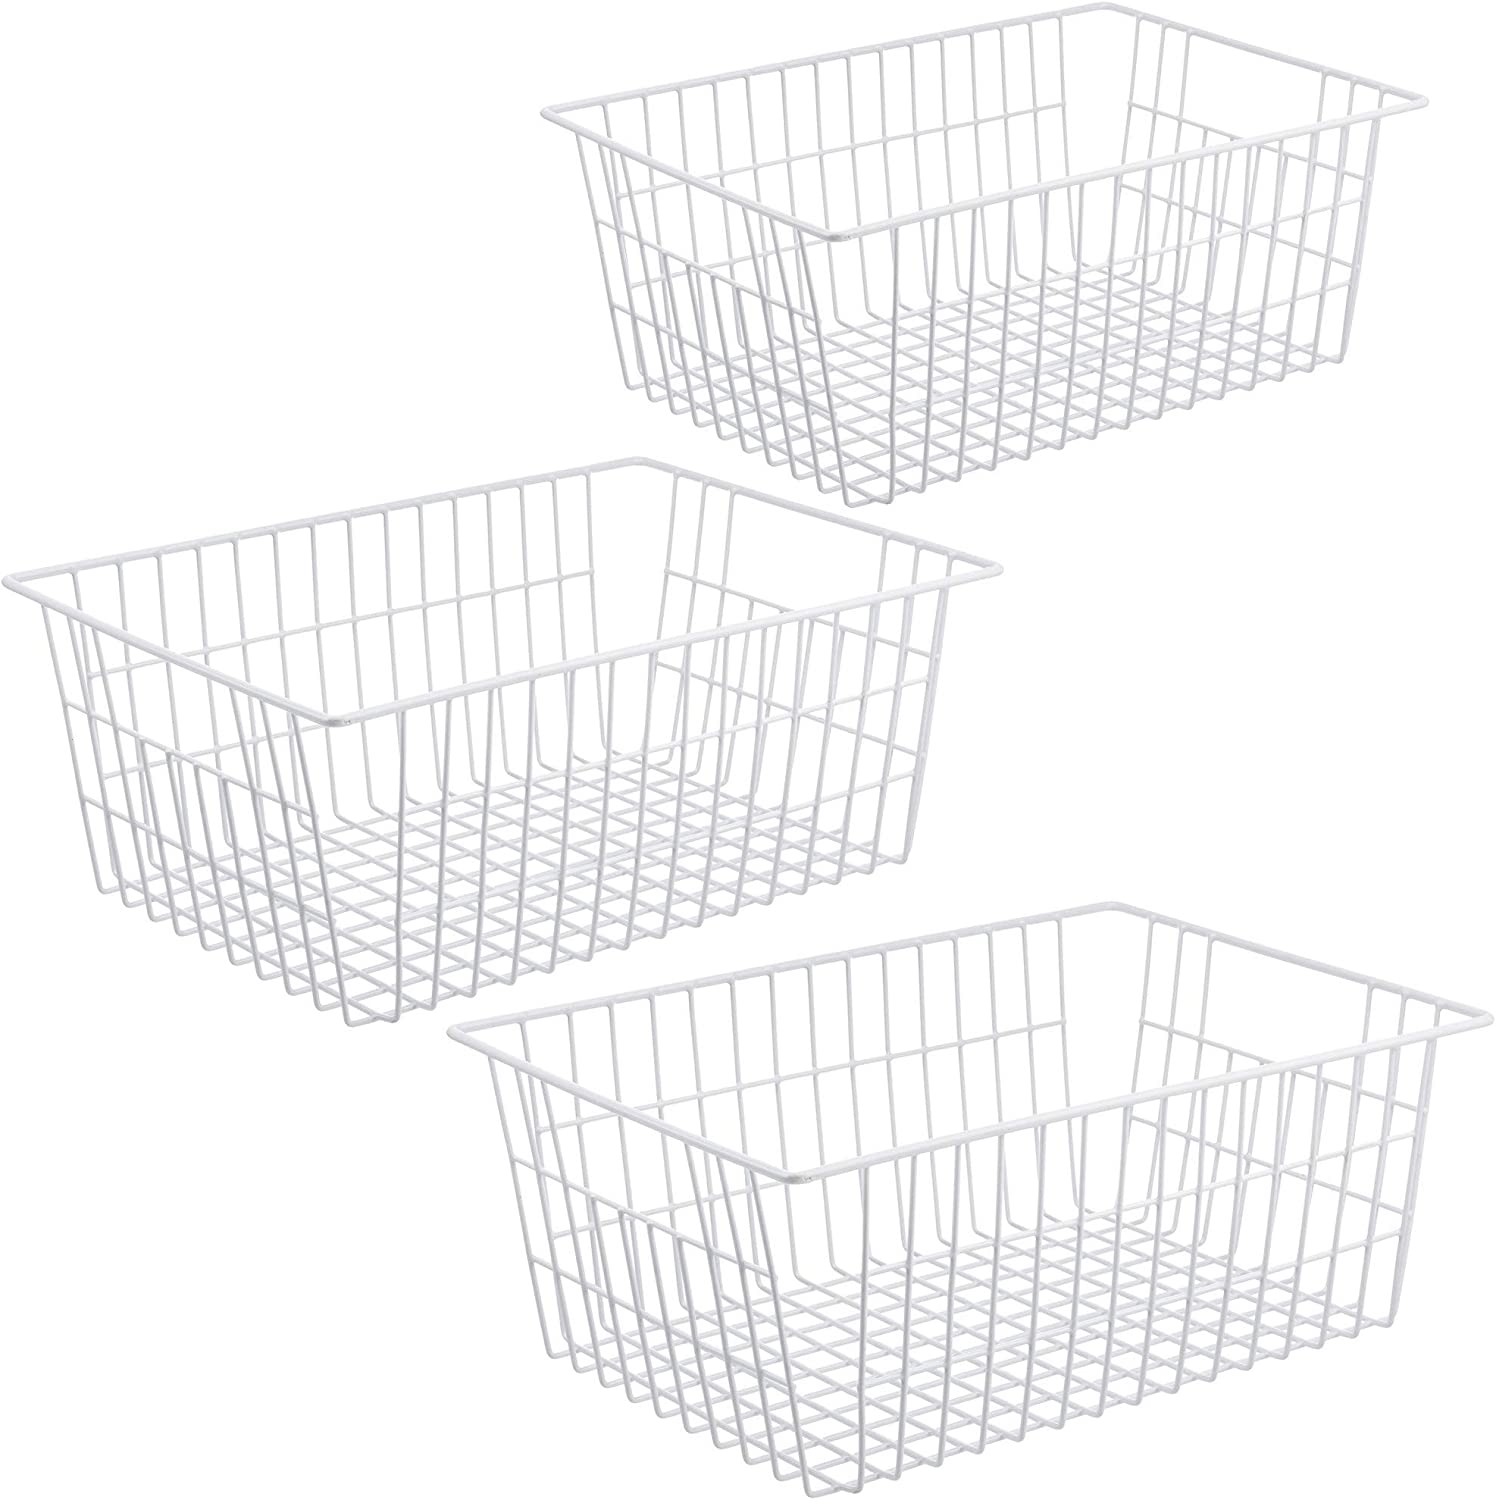 iPEGTOP Metal Wire Stroage Baskets, Large Farmhouse Organizer Bins, Home Office Desk Shelf Freezer Storage for Bathroom, Pantry, Closets Organization Rack with Handles, 3 Pack, White